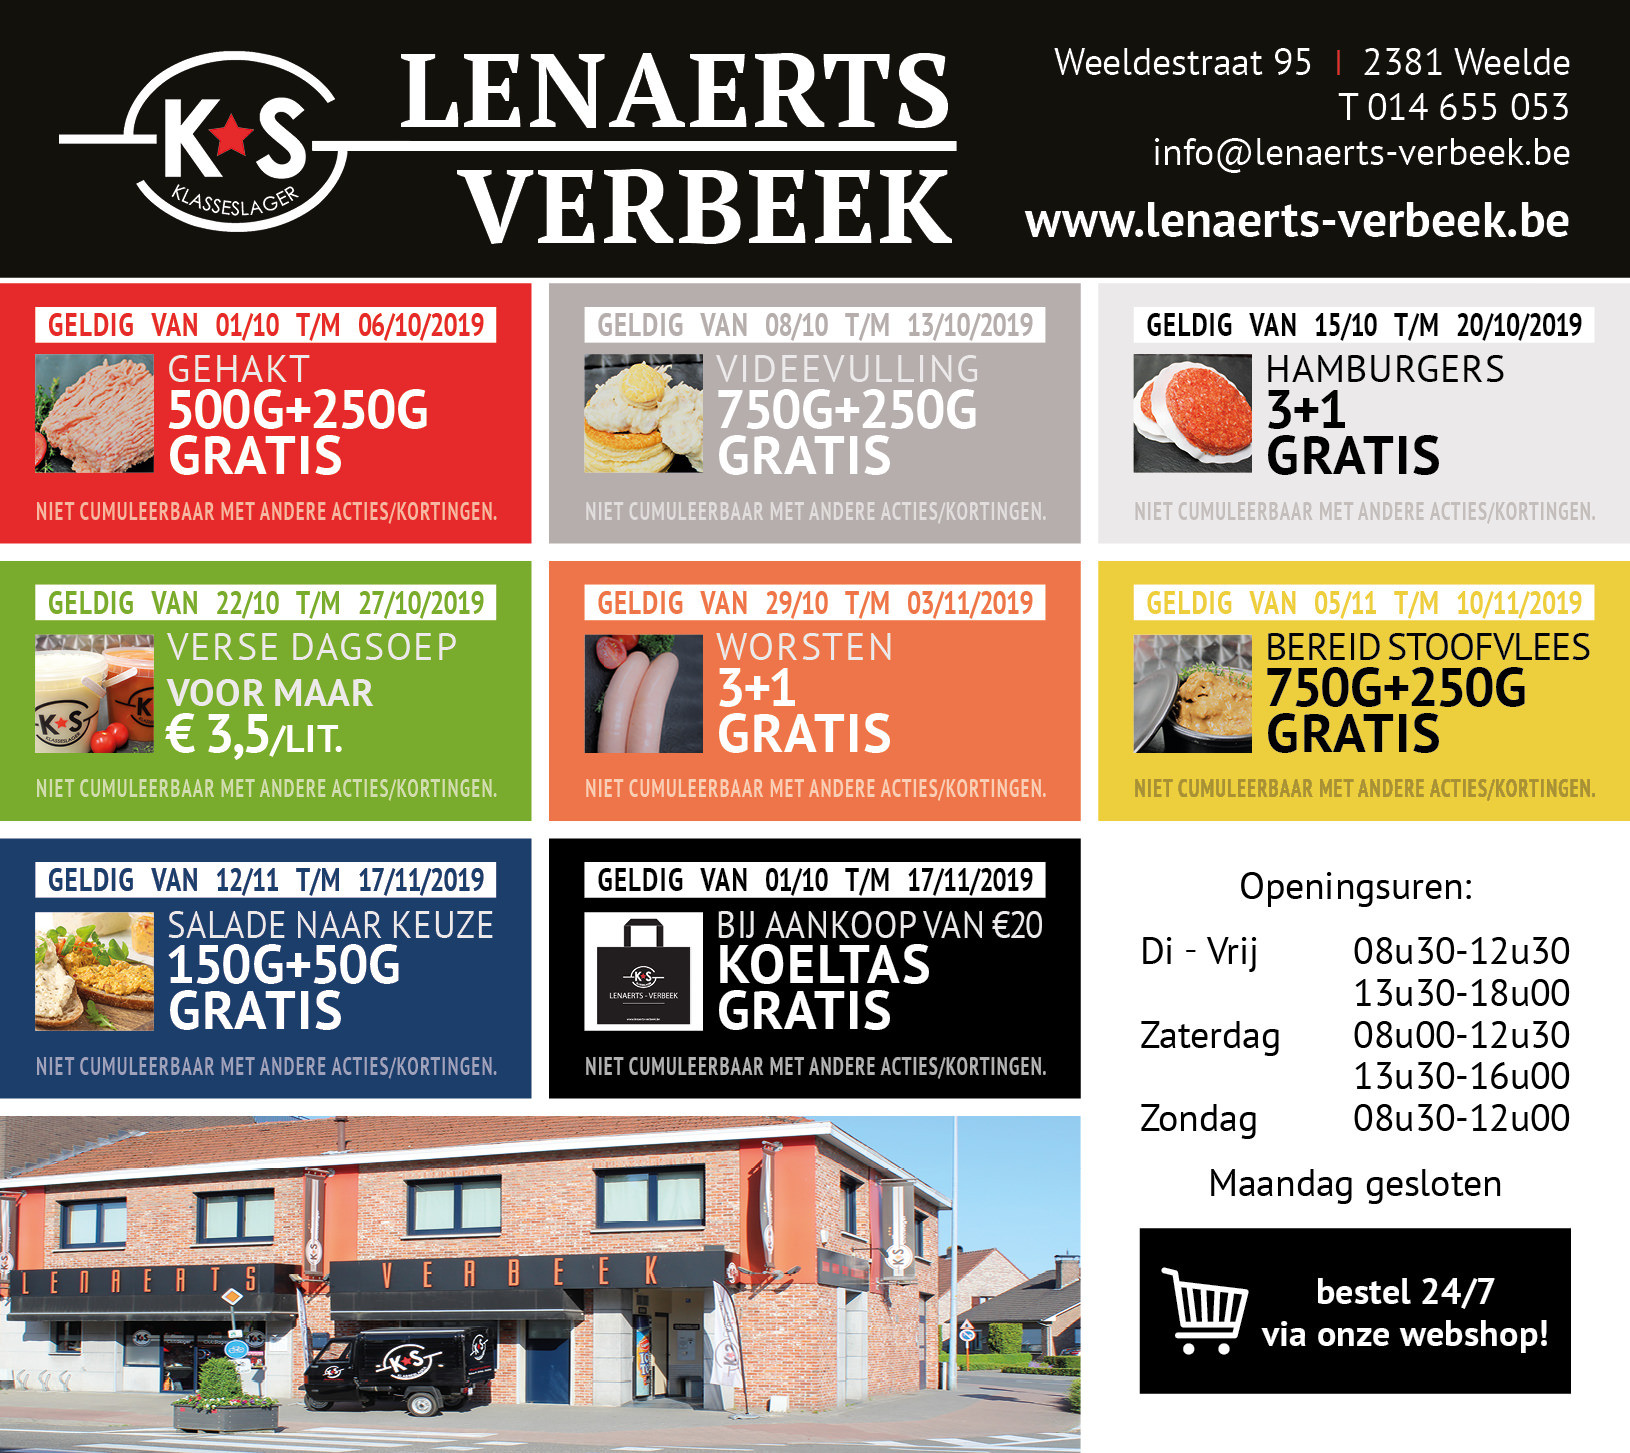 lenaerts-verbeek_klasseslager_ravels_sept_2019.jpg